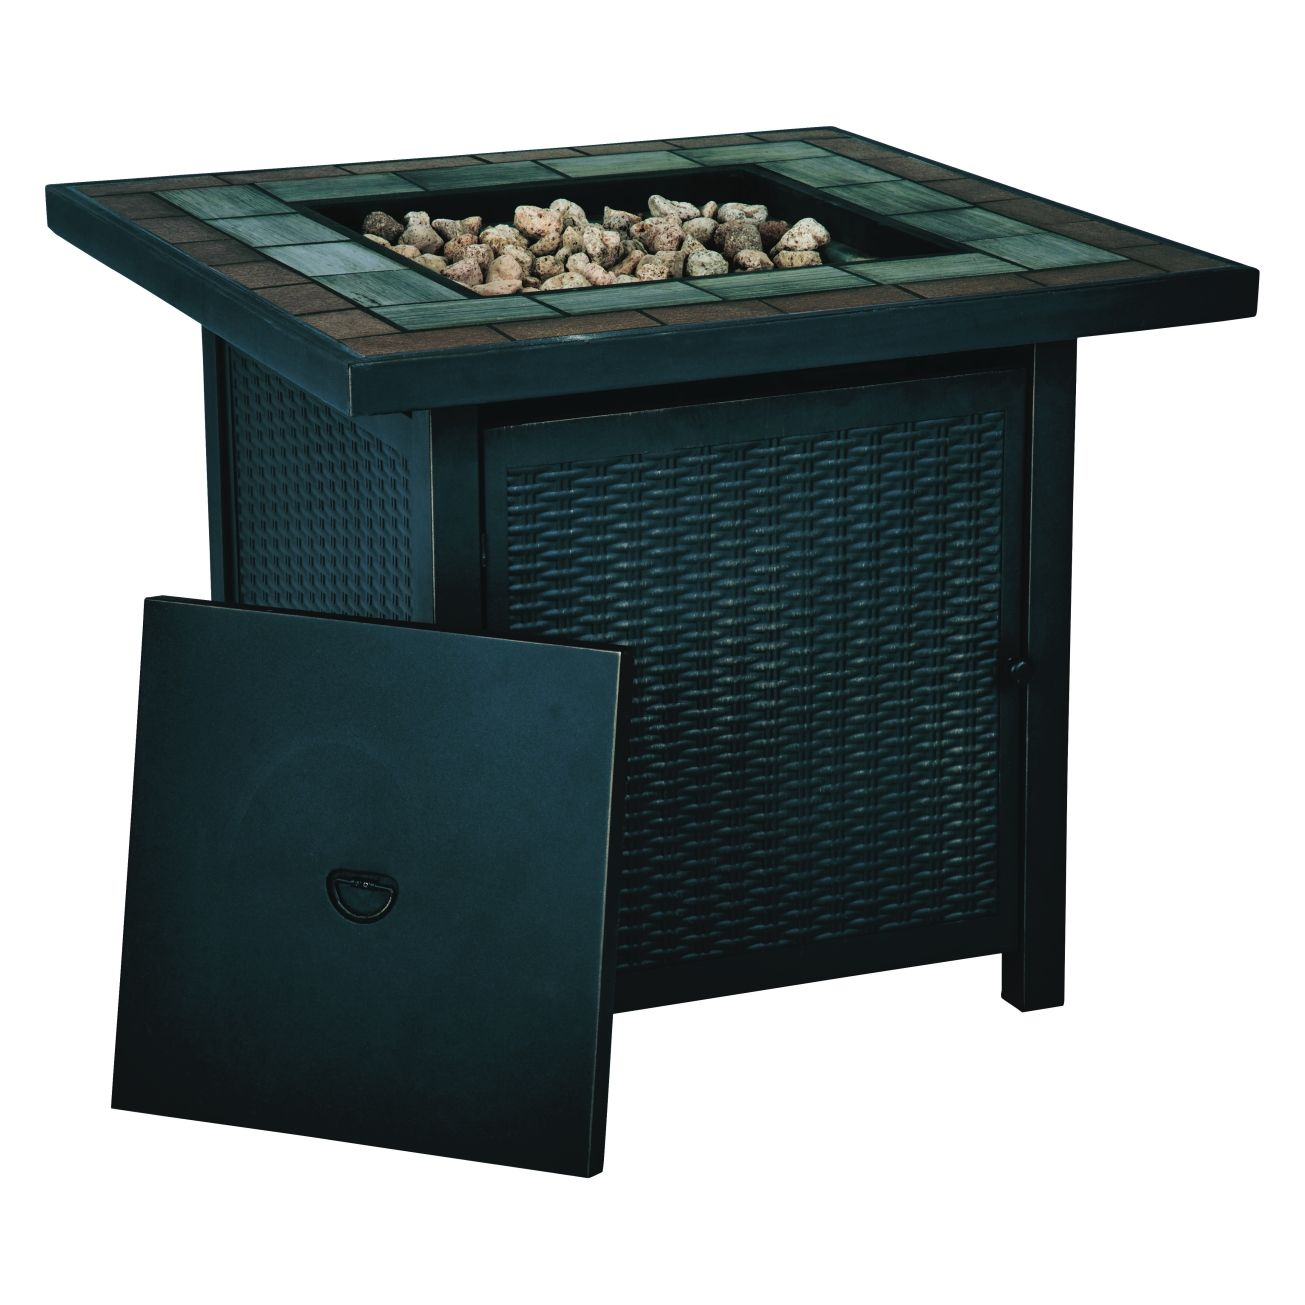 Lovely Living Accents Outdoor Fireplace Part - 11: Living Accents Square Propane Fire Pit 25 In. H X 30 In. W X 30 In. D  Steel(SRGF11626B) - Outdoor Fireplaces - Ace Hardware